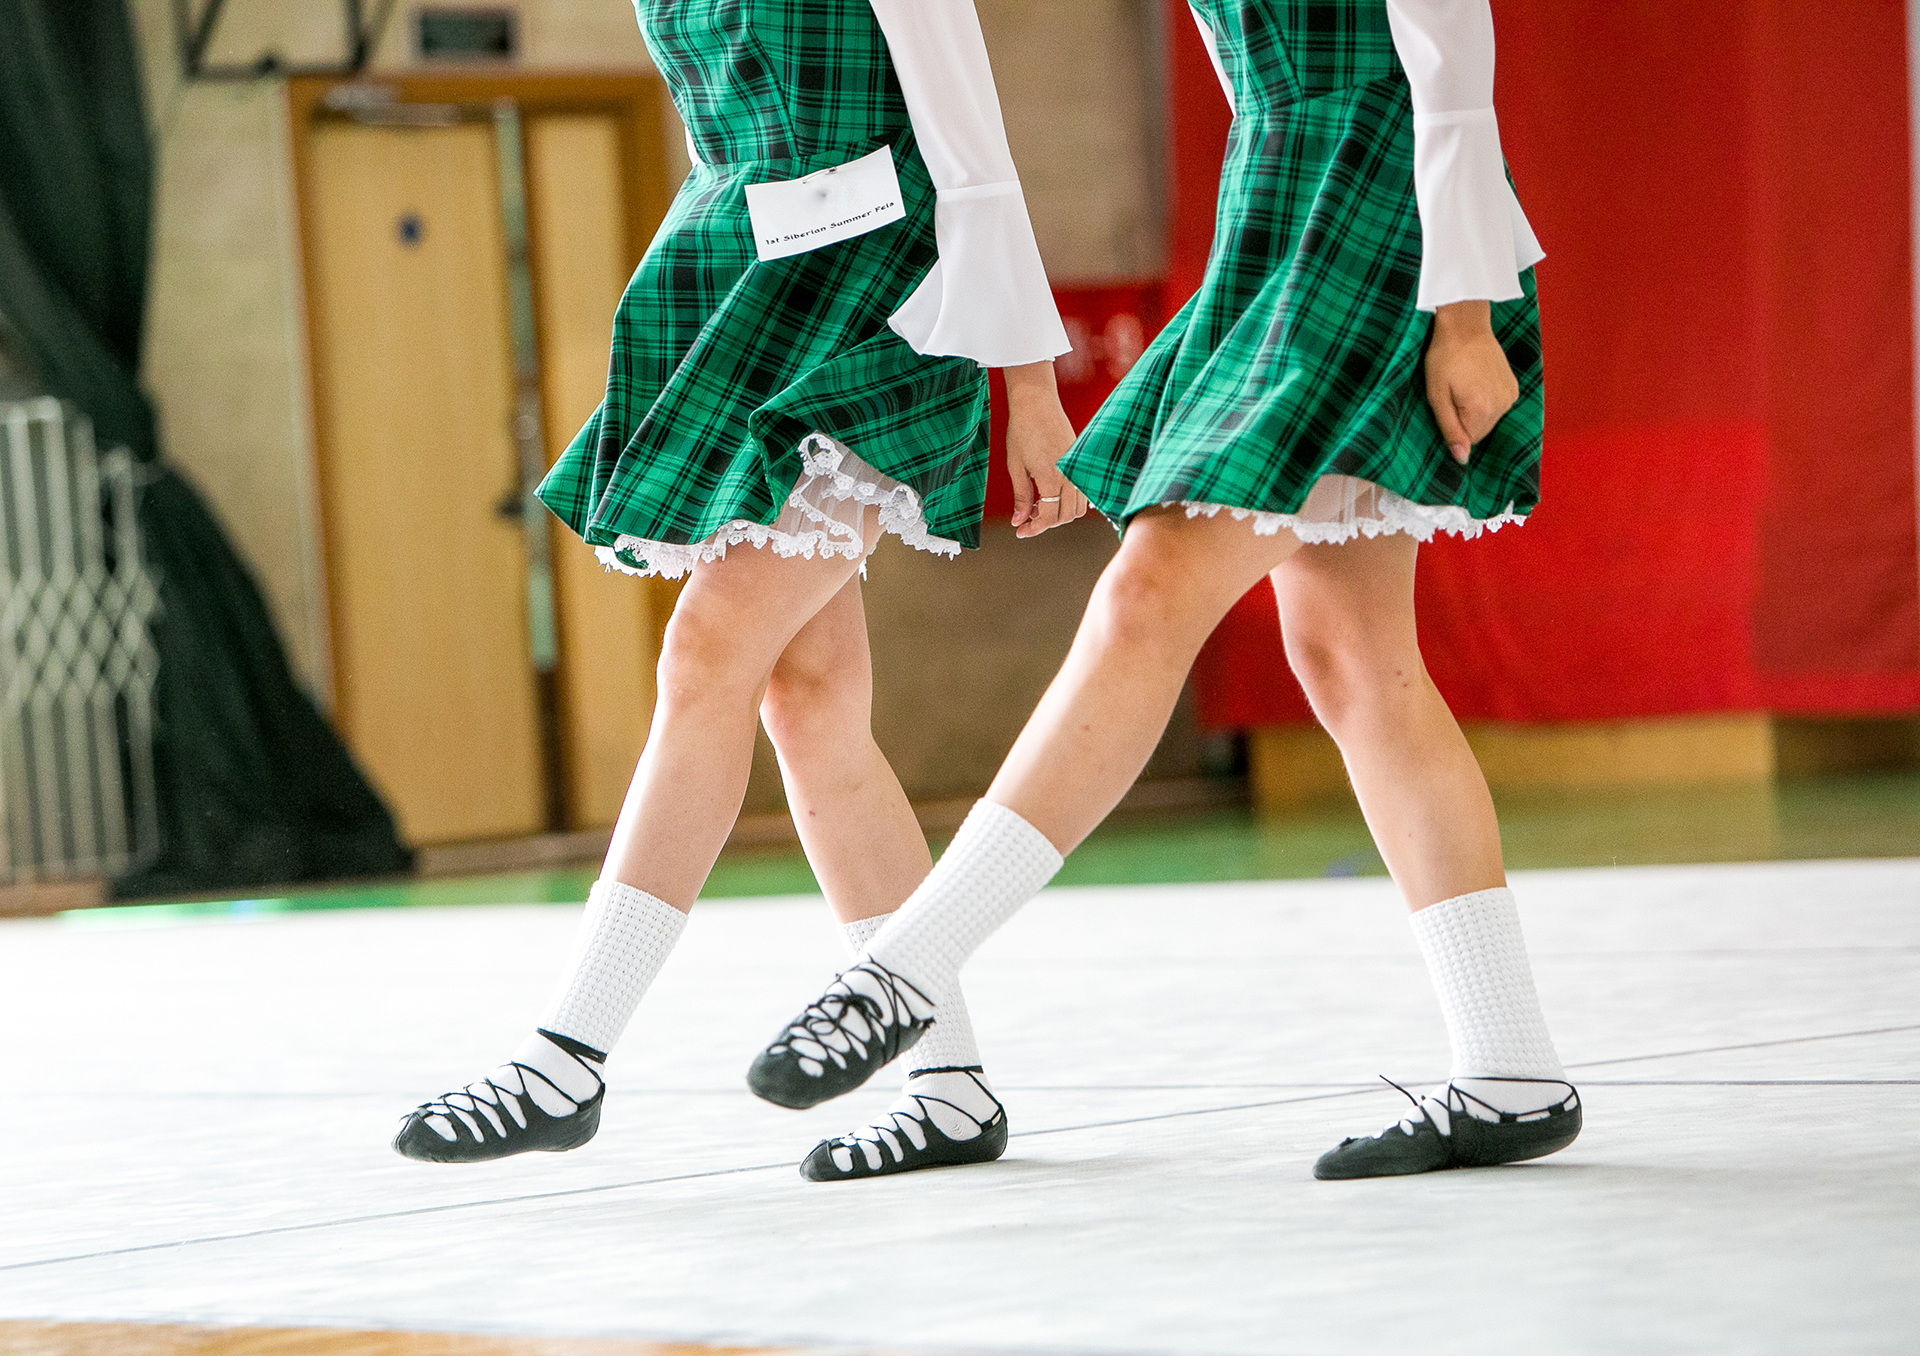 Irish dancing legs in national shoes and dress